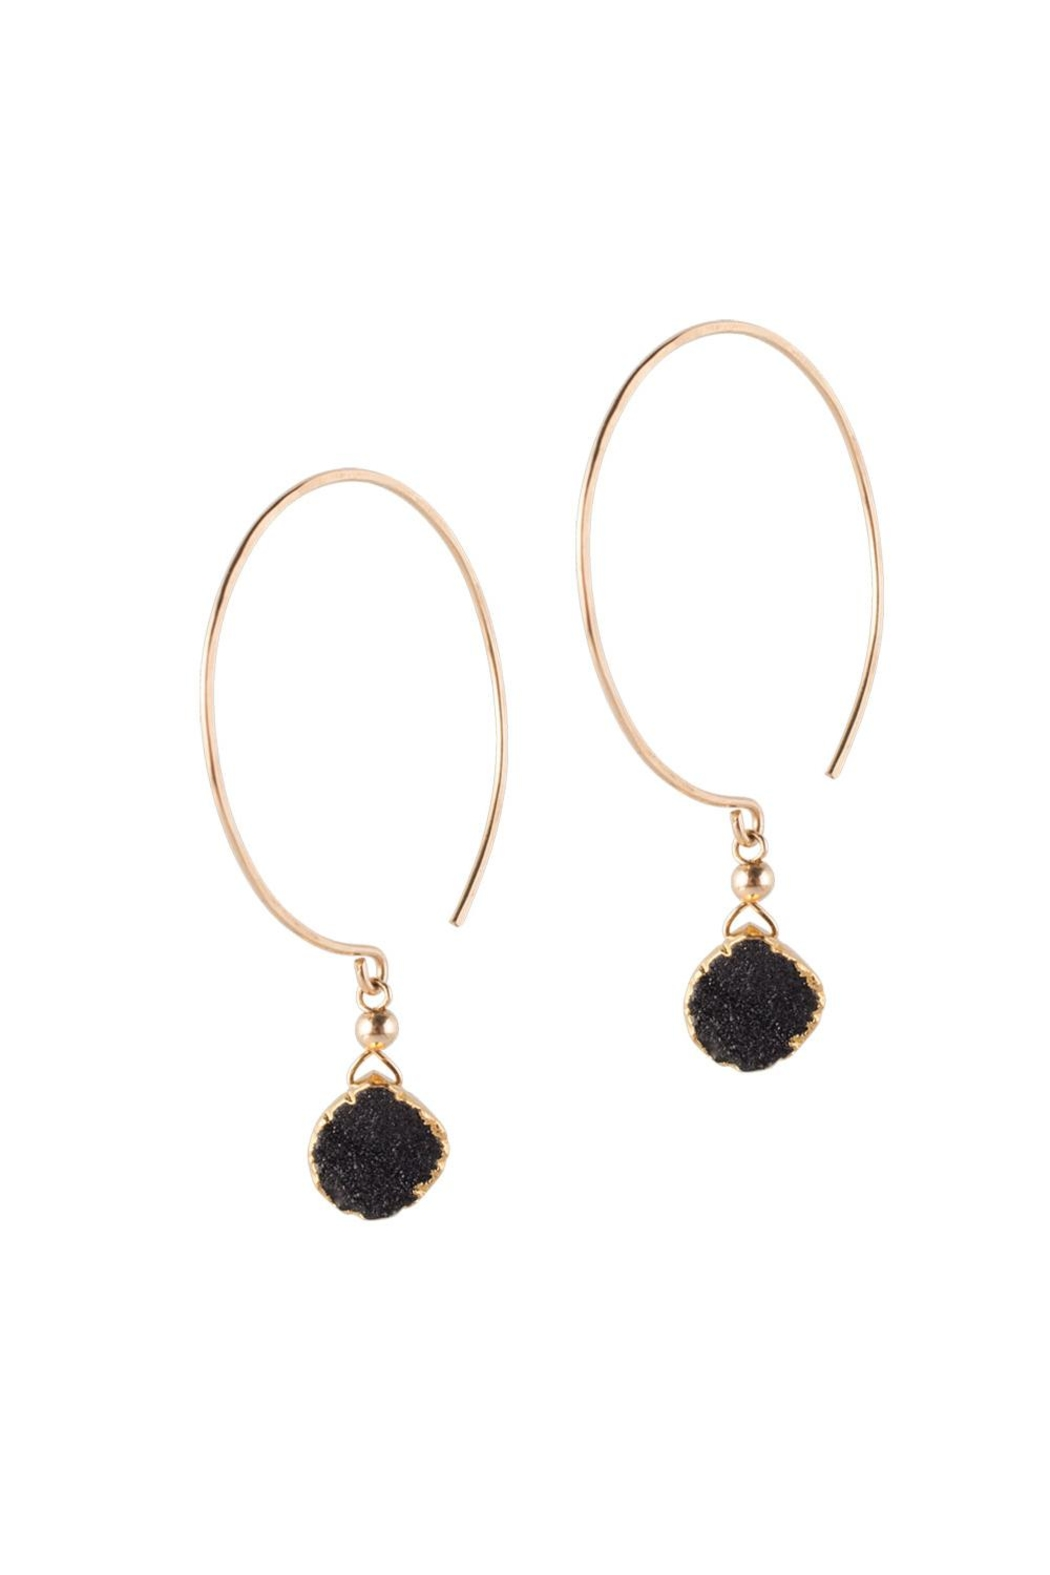 Sayulita Sol Jewelry Gold-Hoop Black-Druzy Earrings - Main Image